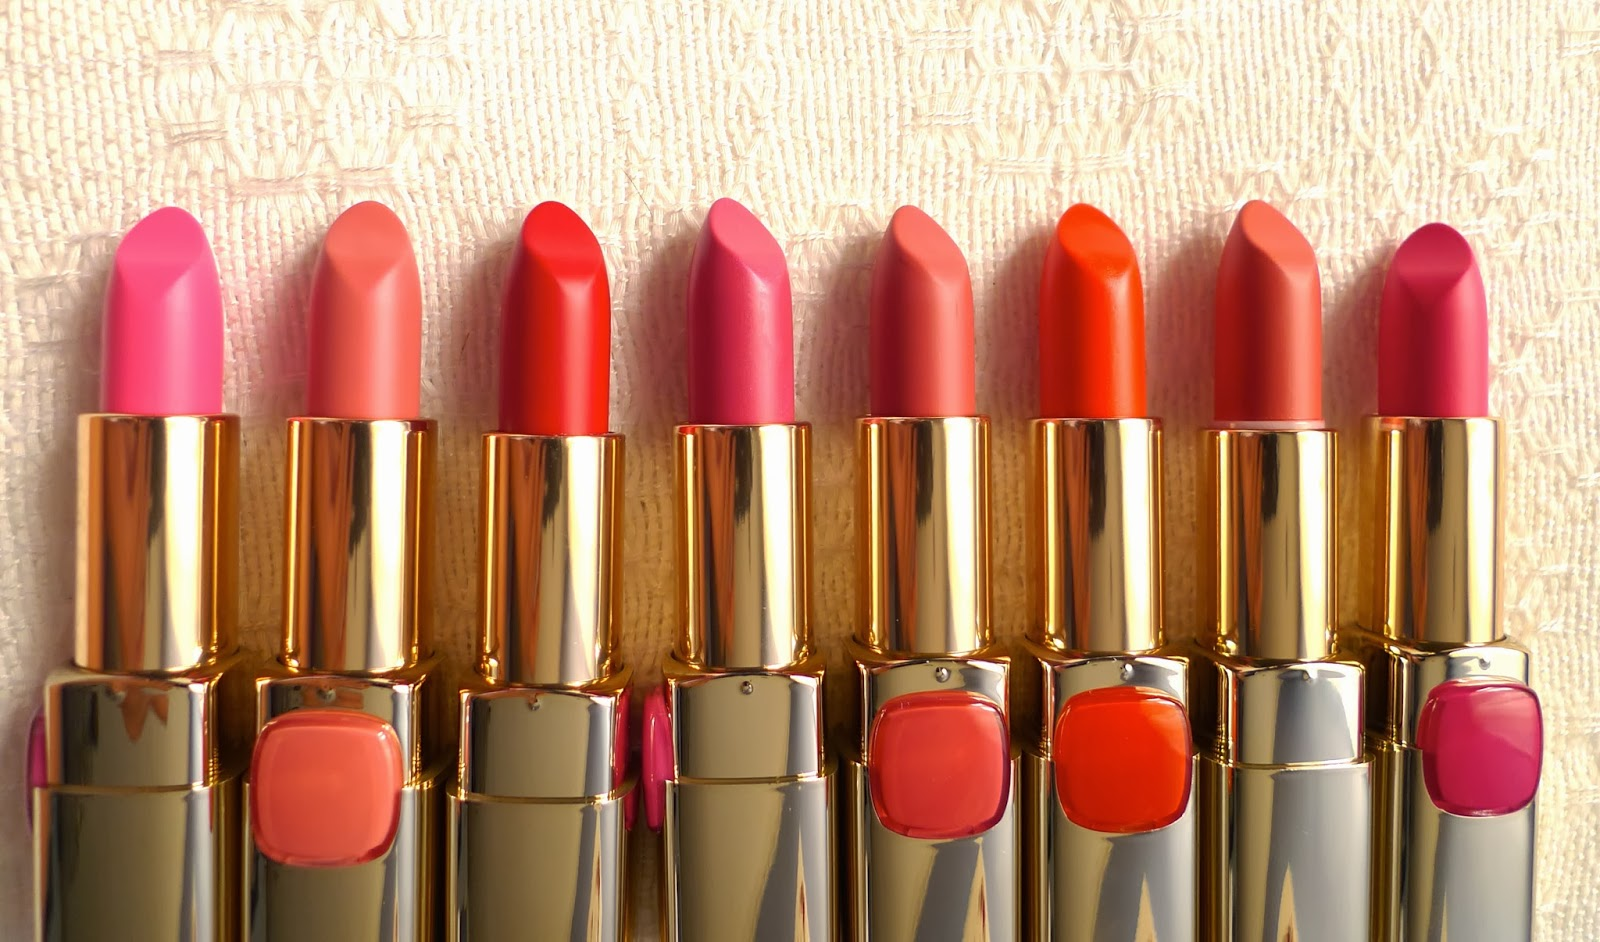 Loreal color caresse by color rich lipstick - L Oreal Color Riche Lipstick C402 Peach Dream Paris Gallery Malaysiaf